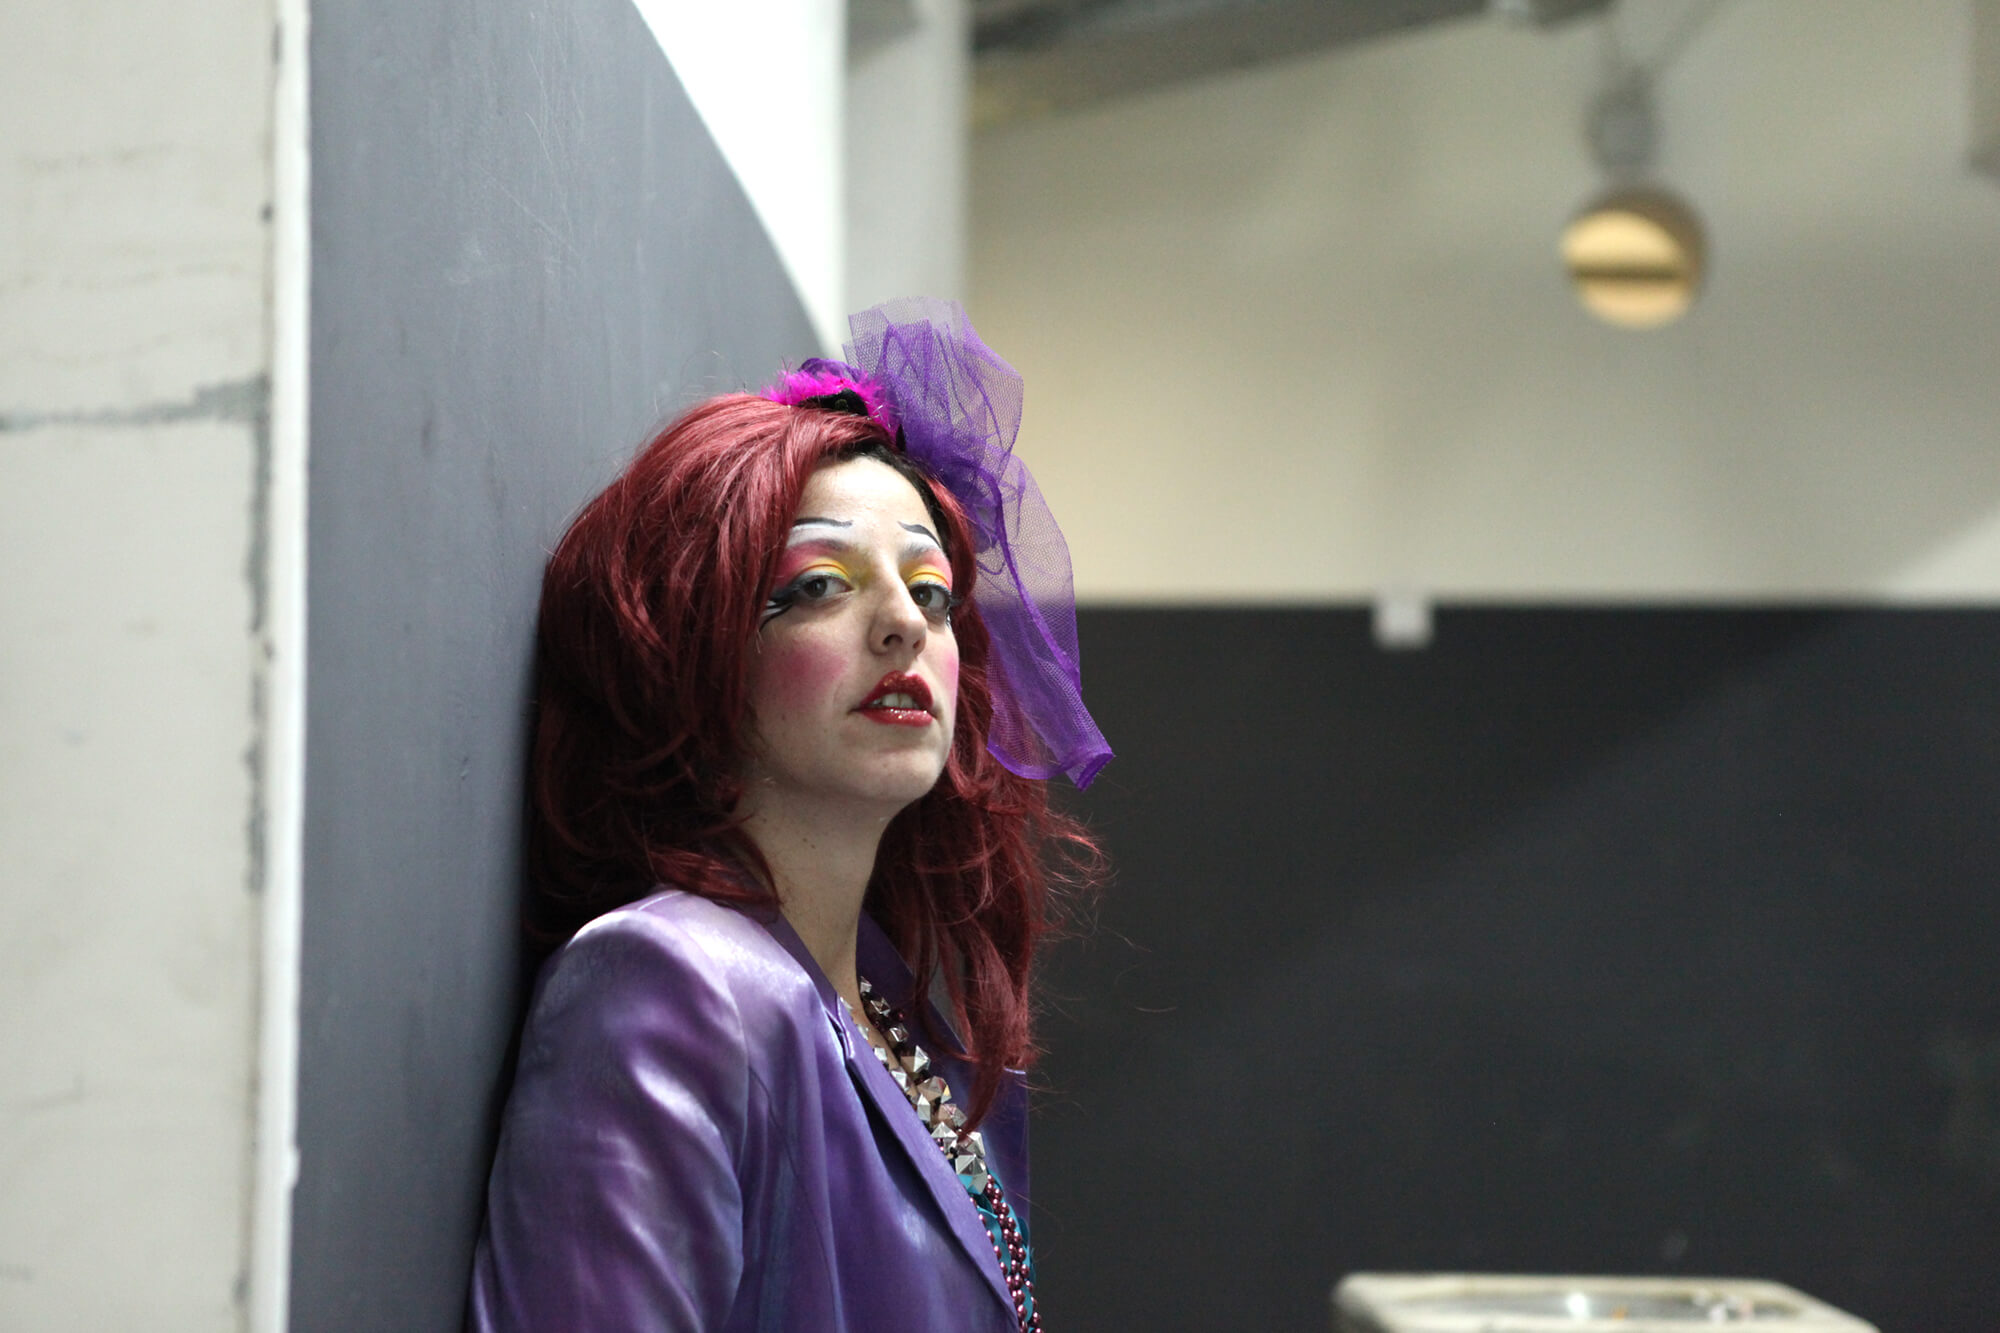 A comic actress with an orange wig and purple jacket